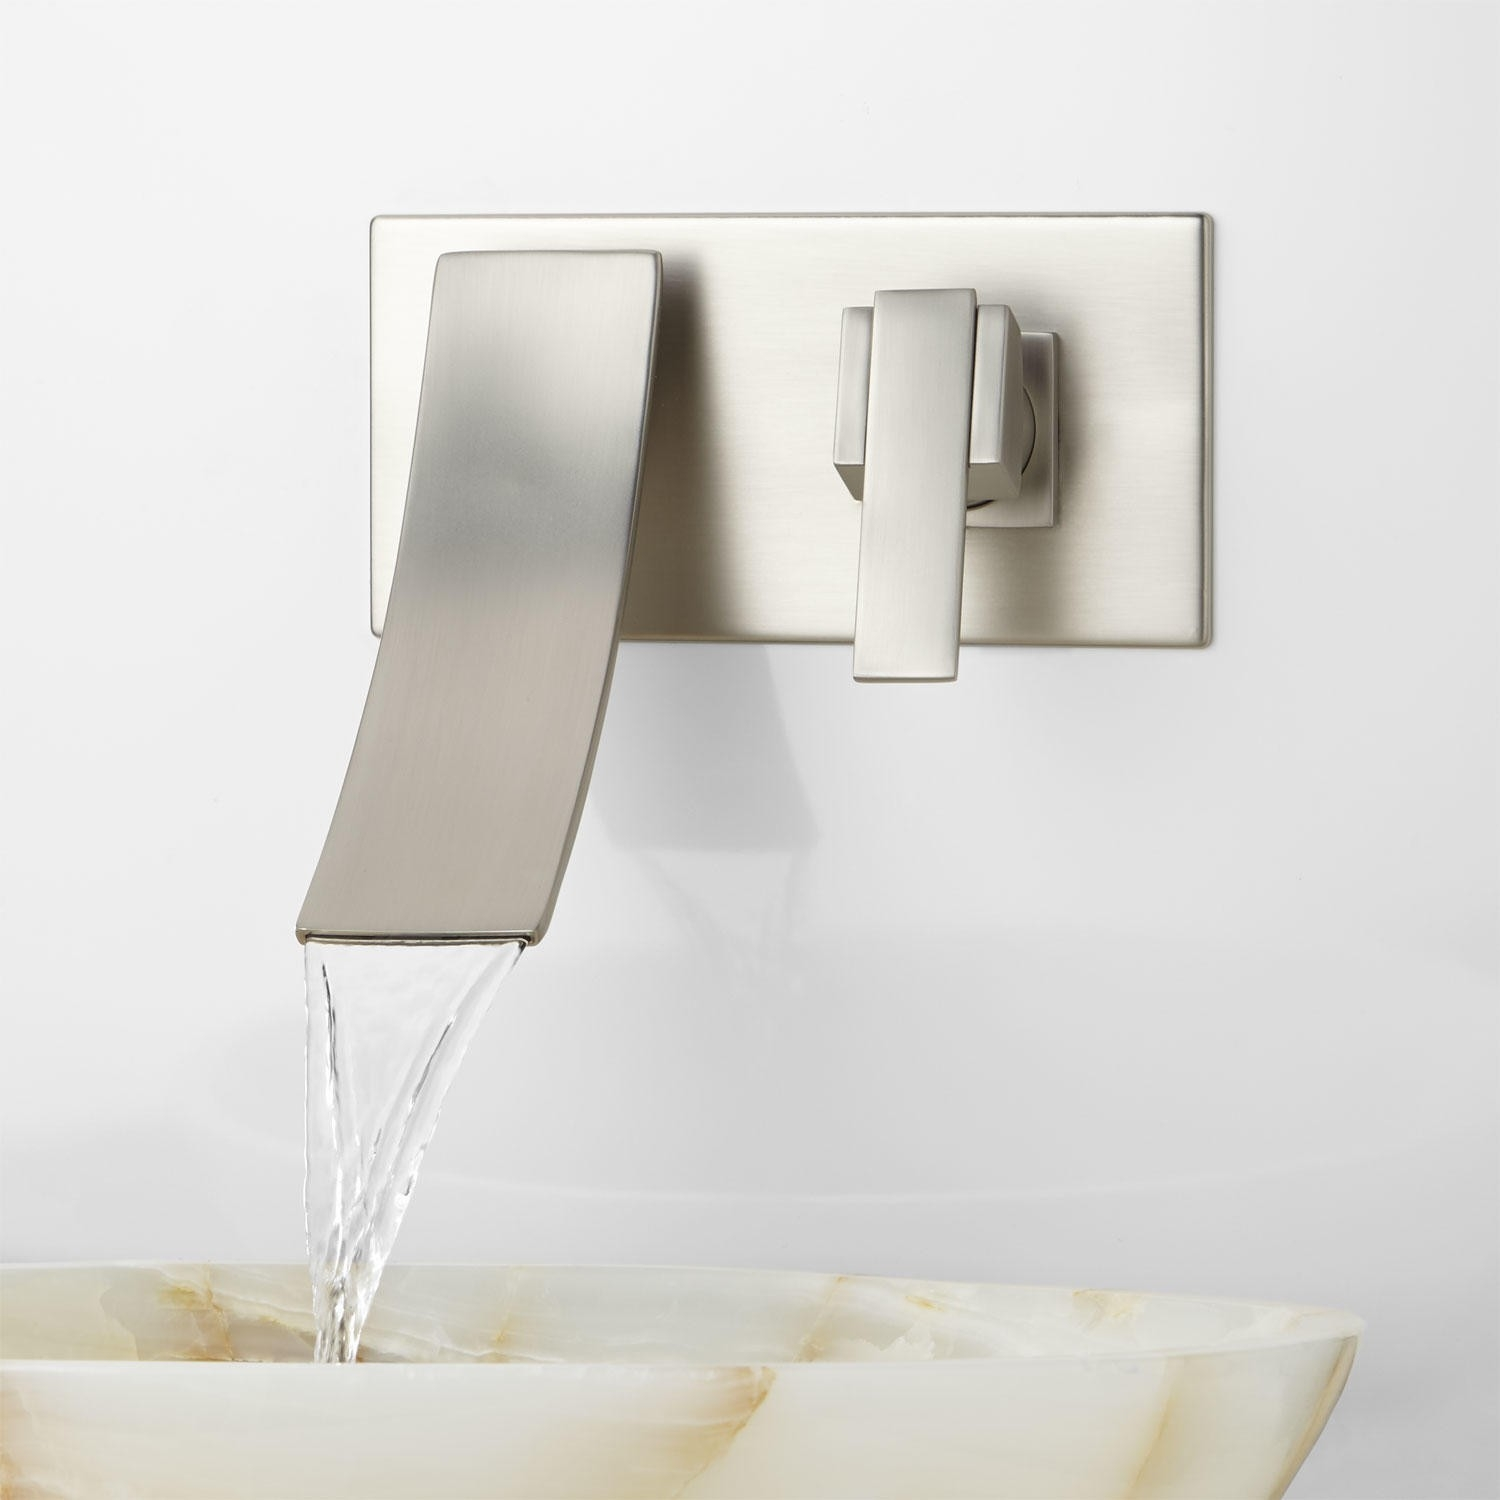 Ideas, reston wall mount waterfall bathroom faucet bathroom pertaining to dimensions 1500 x 1500  .